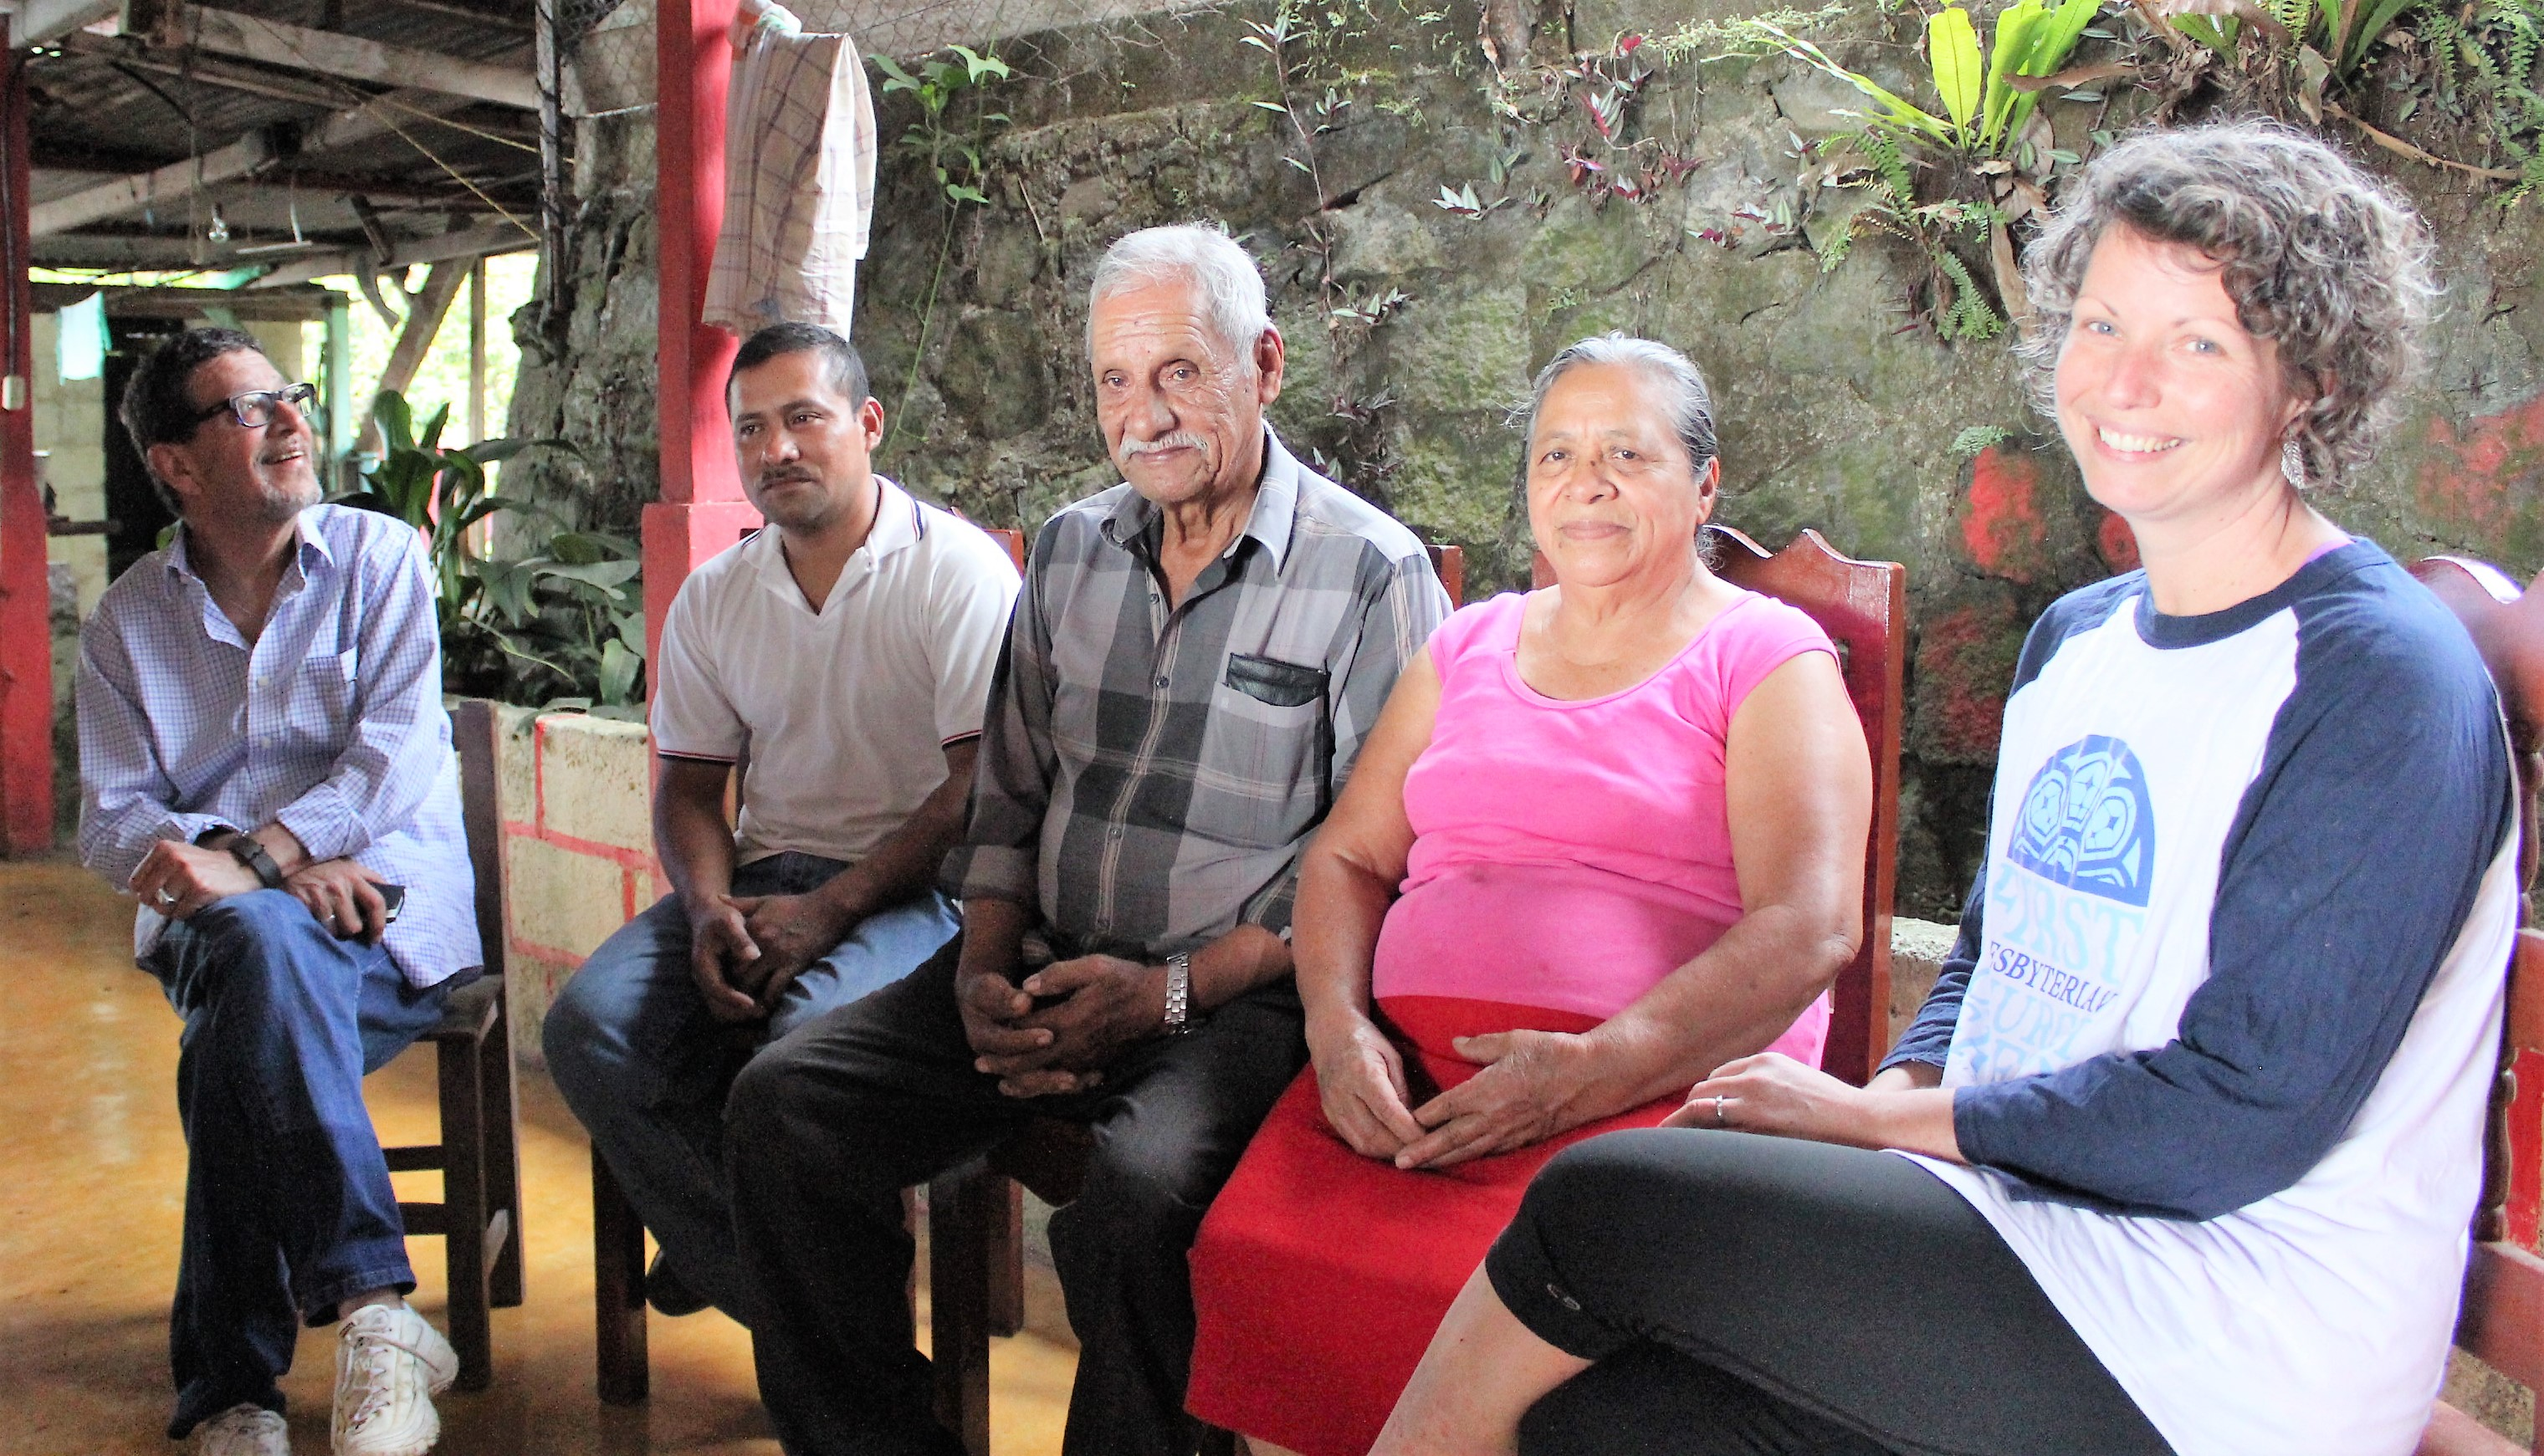 Don Bibiano Galvez receiving Border to Border Coffee, Migration and Faith delegation members in his home. From left to right: Conrad Rocha, Executive of the Synod of the Southwest; Don Bibiano's son Jose; Don Bibiano Galvez; his wife, Maria; and Ansley Wright of First Presbyterian Church Greer.